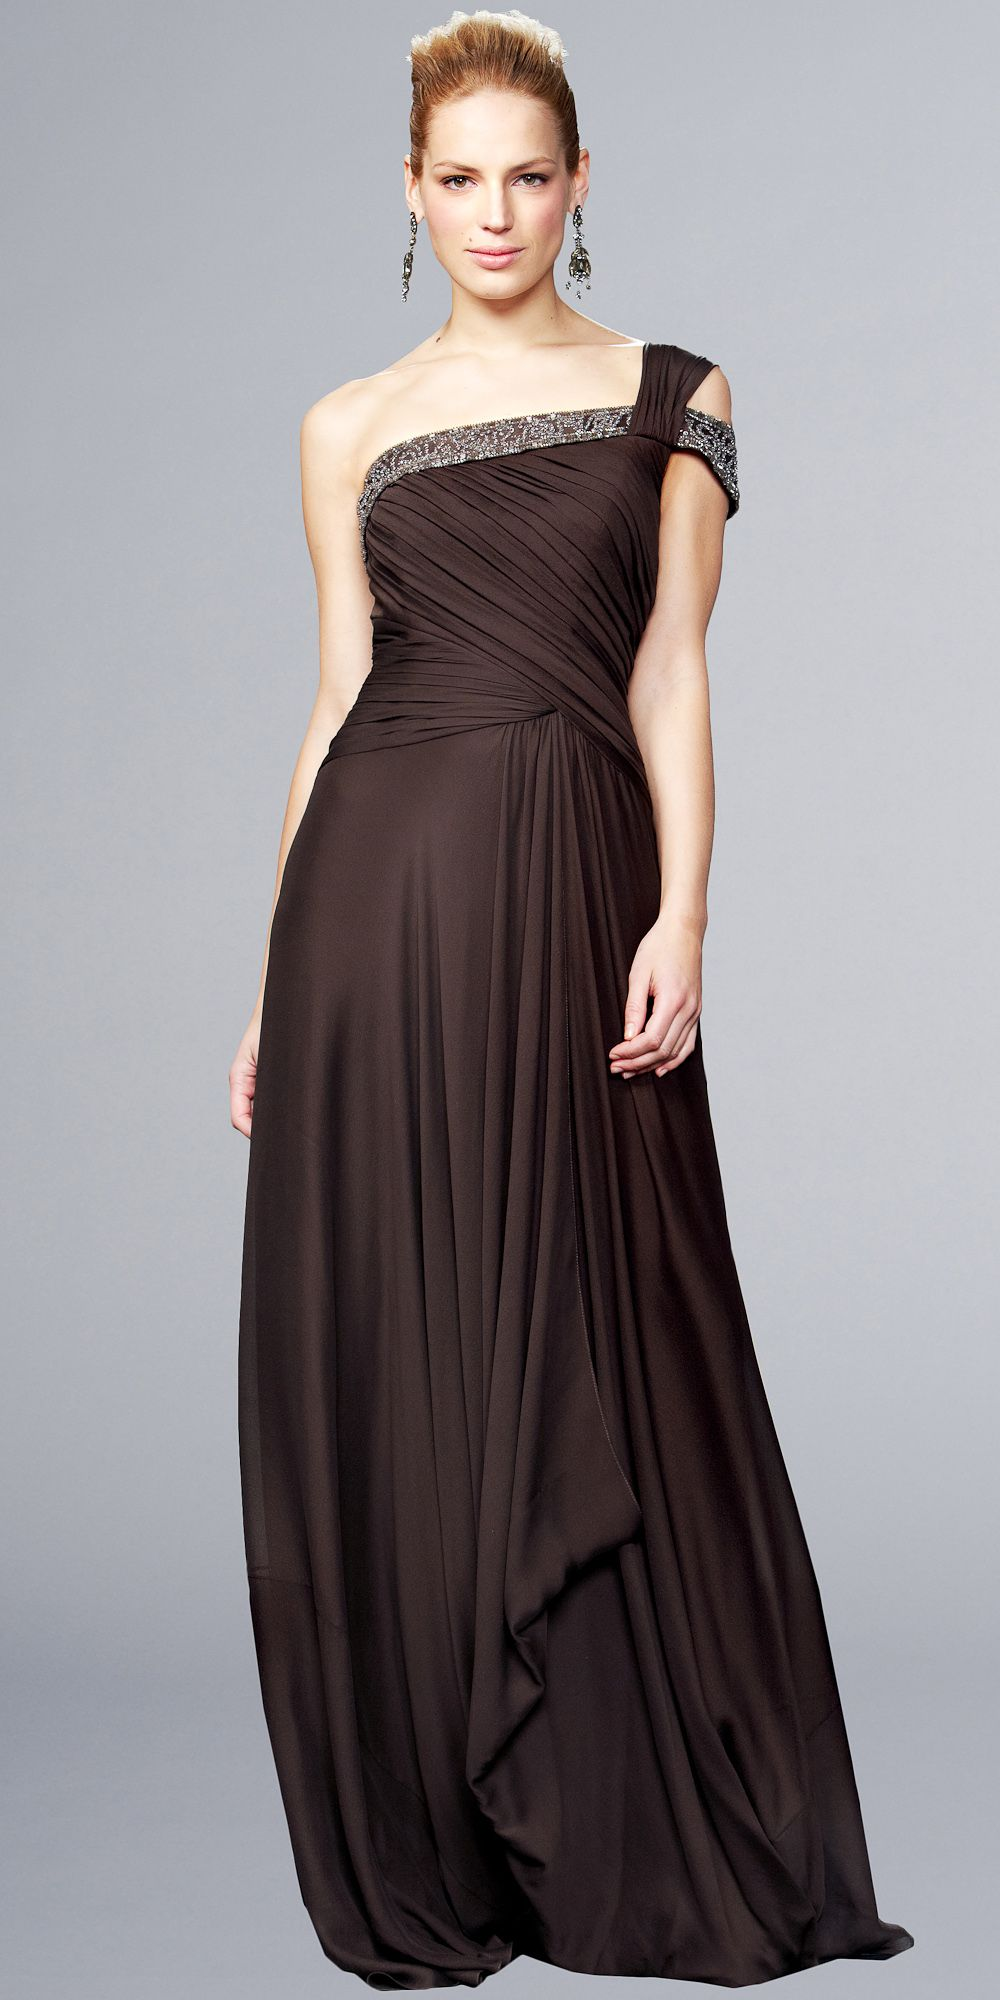 Evening-Gowns- | Formal Gowns | Pinterest | Gowns, Shoulder and ...